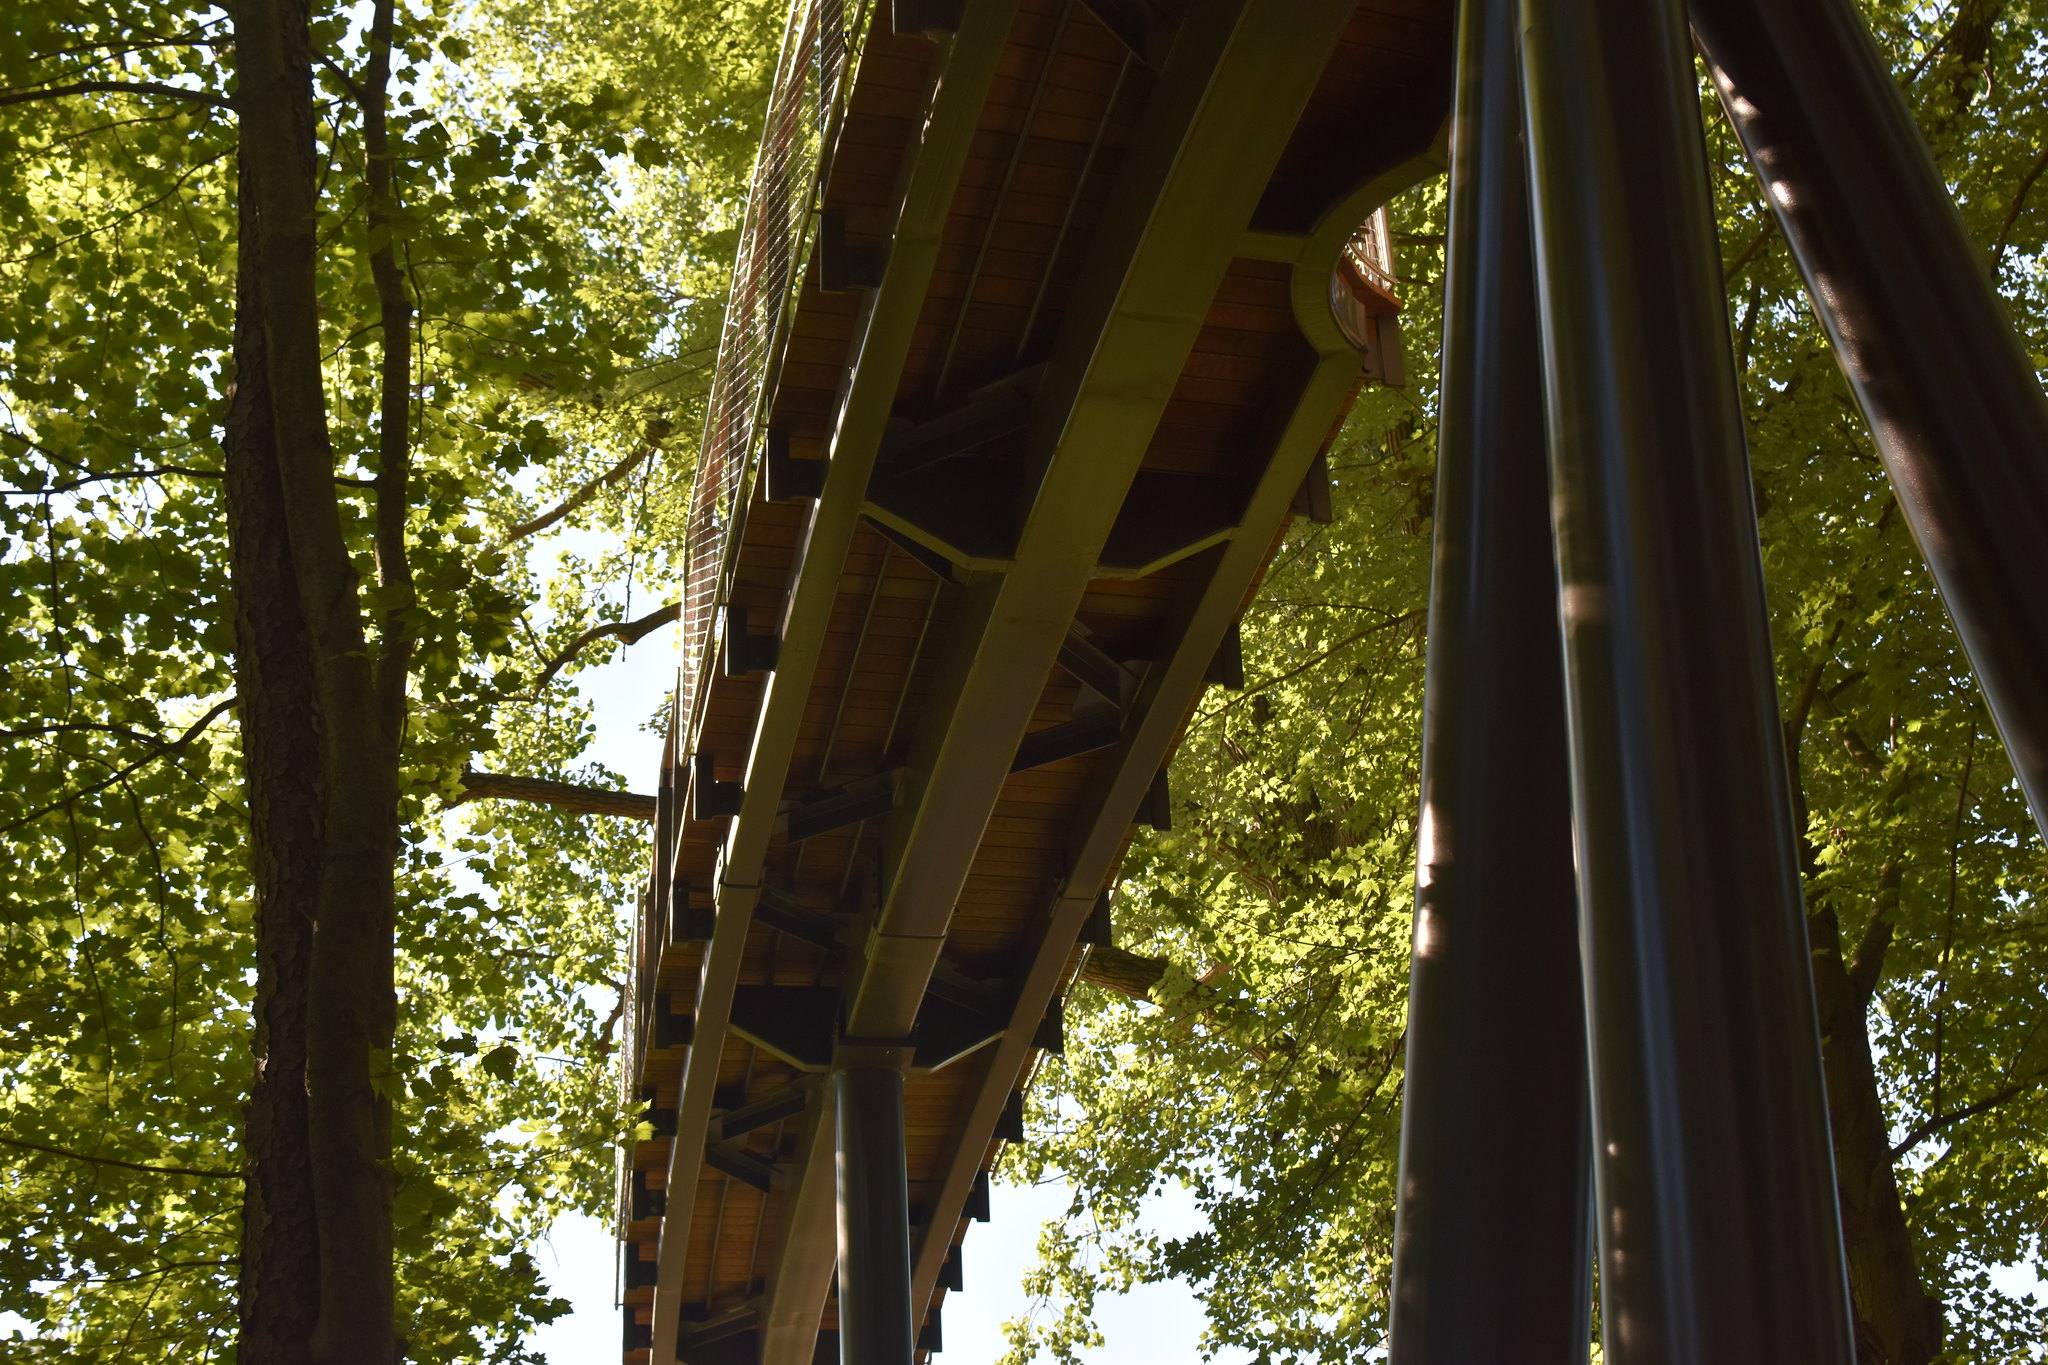 Whiting Forest of Dow Gardens Canopy Walk, An Adco Detailing Project, winner of the 2020 SDS2 Solid Steel Awards in Commercial, Small tonnage. Photo courtesy of Dow Gardens.